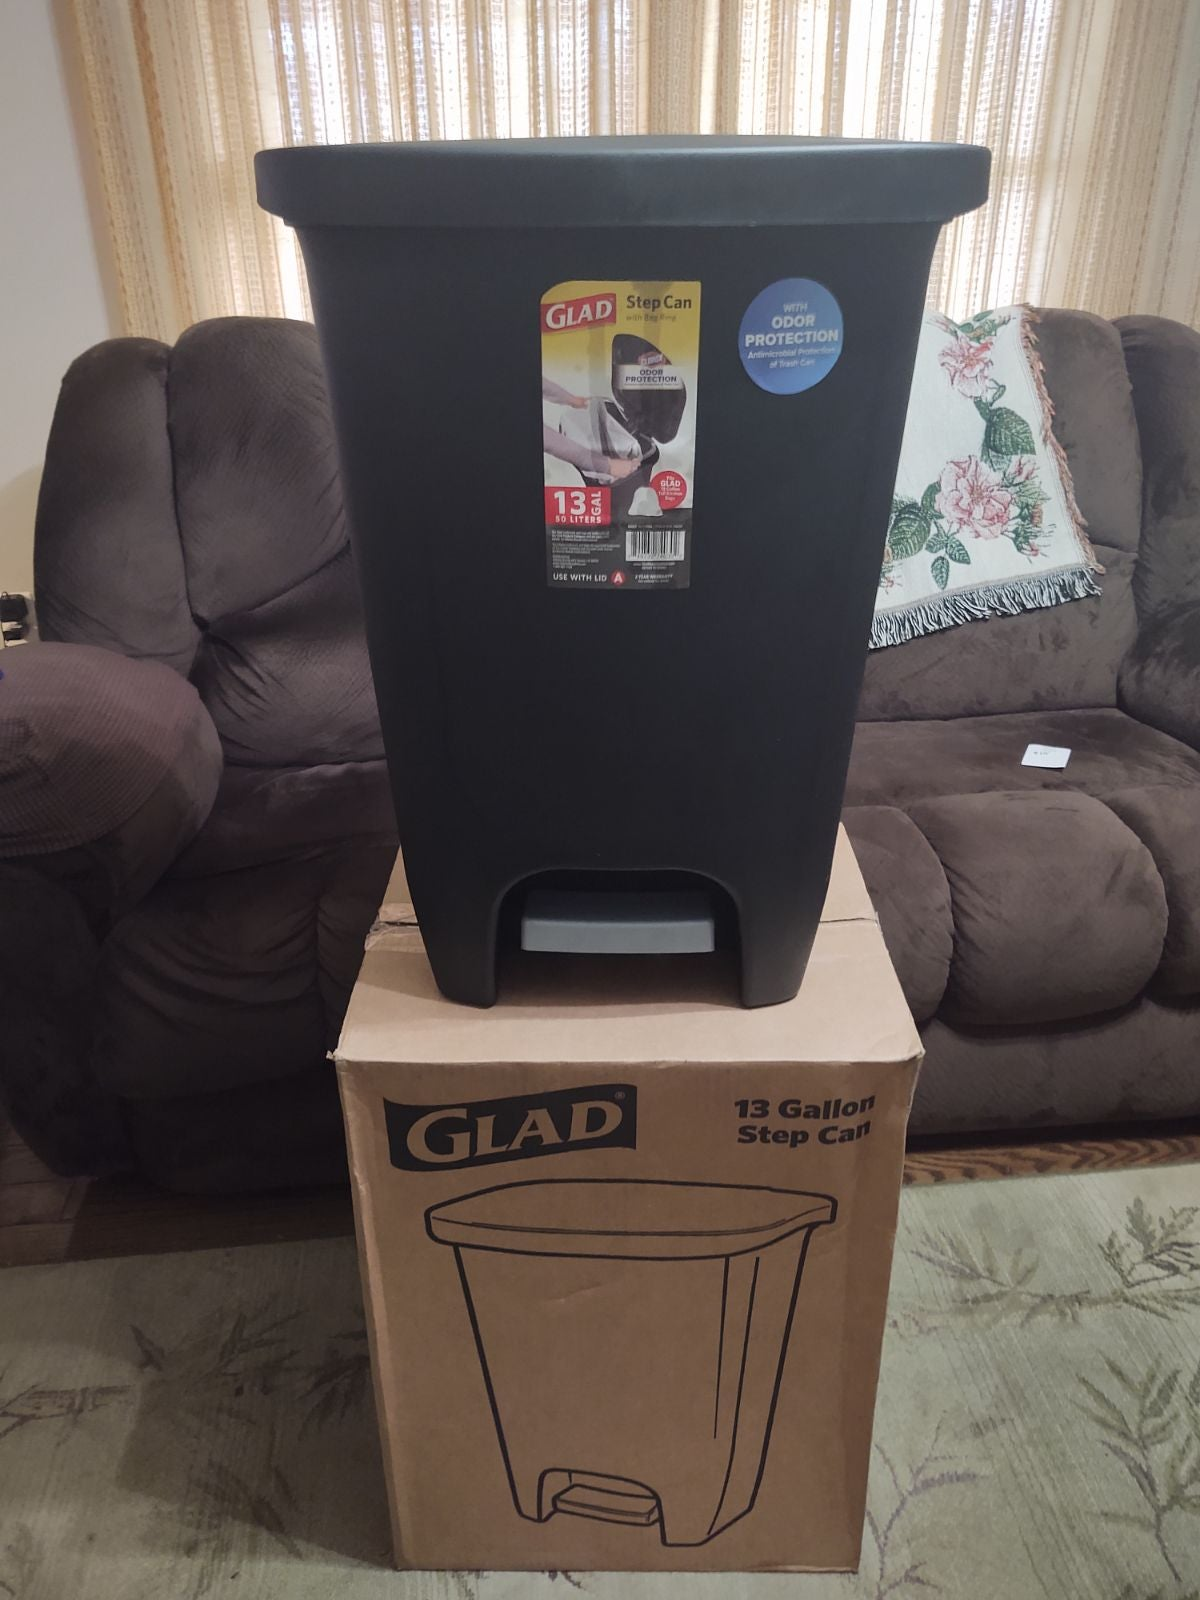 Glad garbage can